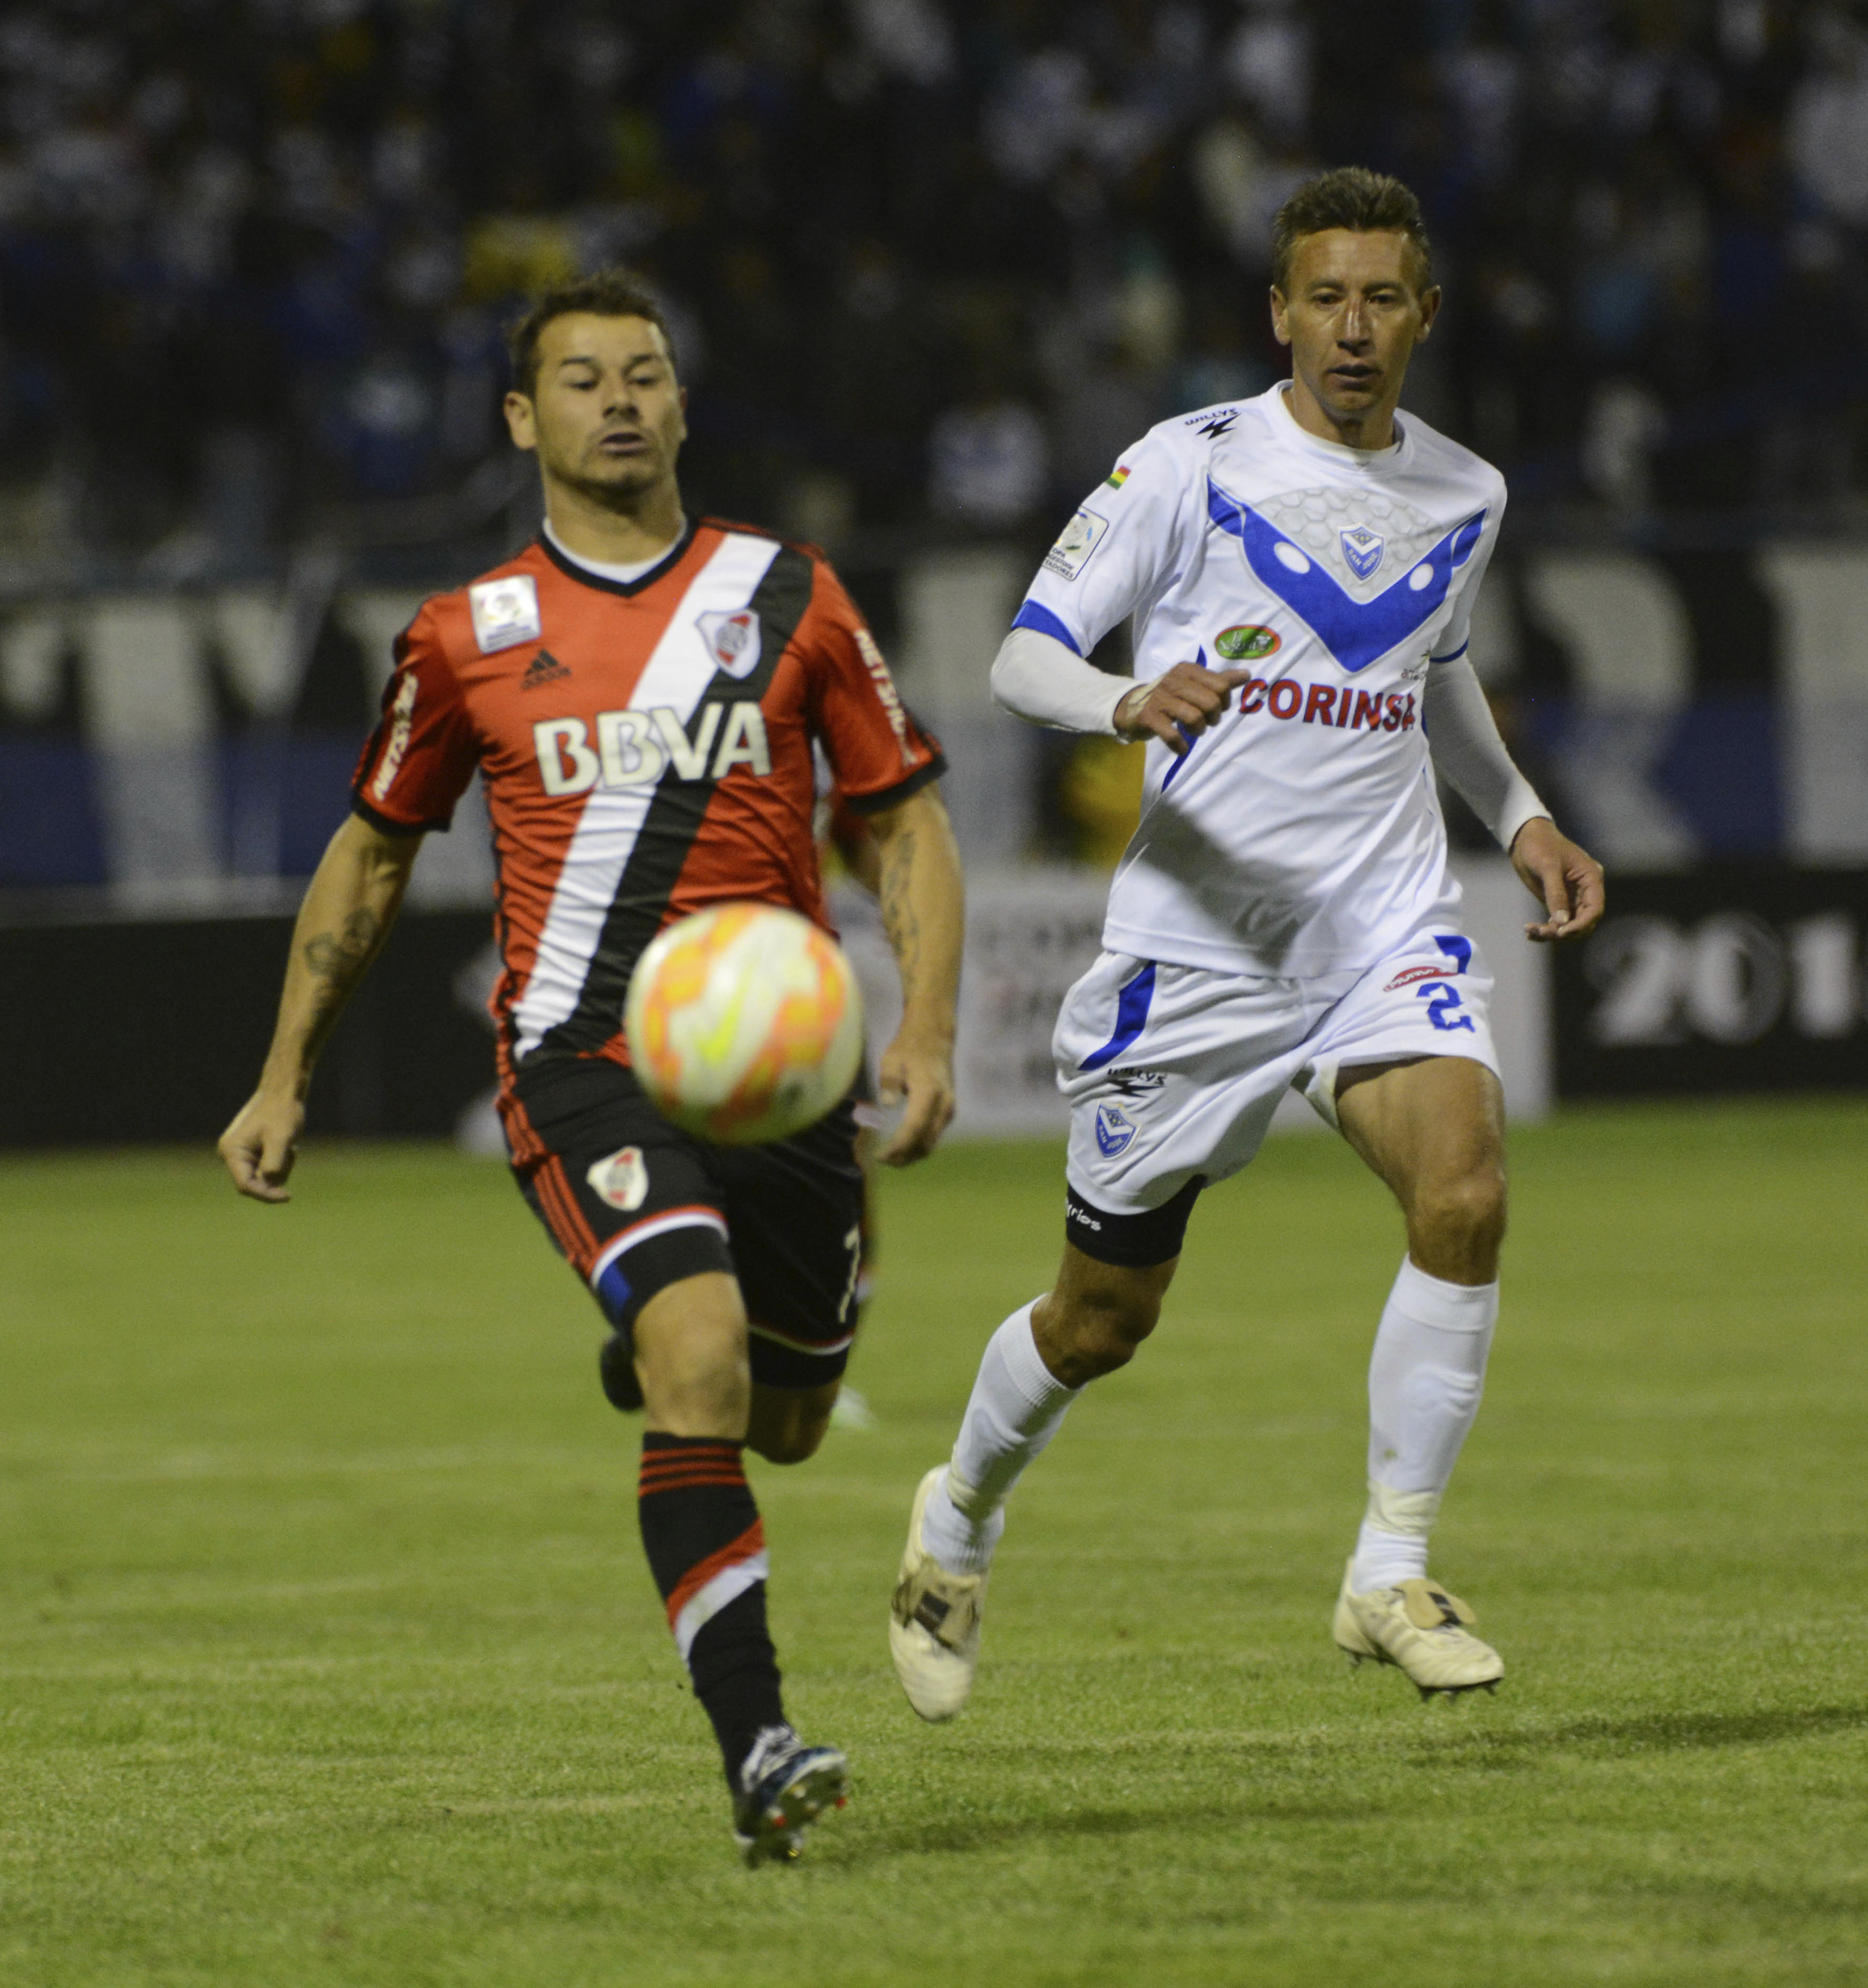 Rodrigo Mora of River (L) and Arnaldo Vera of San Jose (R) run for the ball during a match between San Jose and River Plate as part of group stage Copa Bridgestone Libertadores 2015 at Jesus Bermudez Stadium on February 19, 2015 in Oruro, Bolivia.